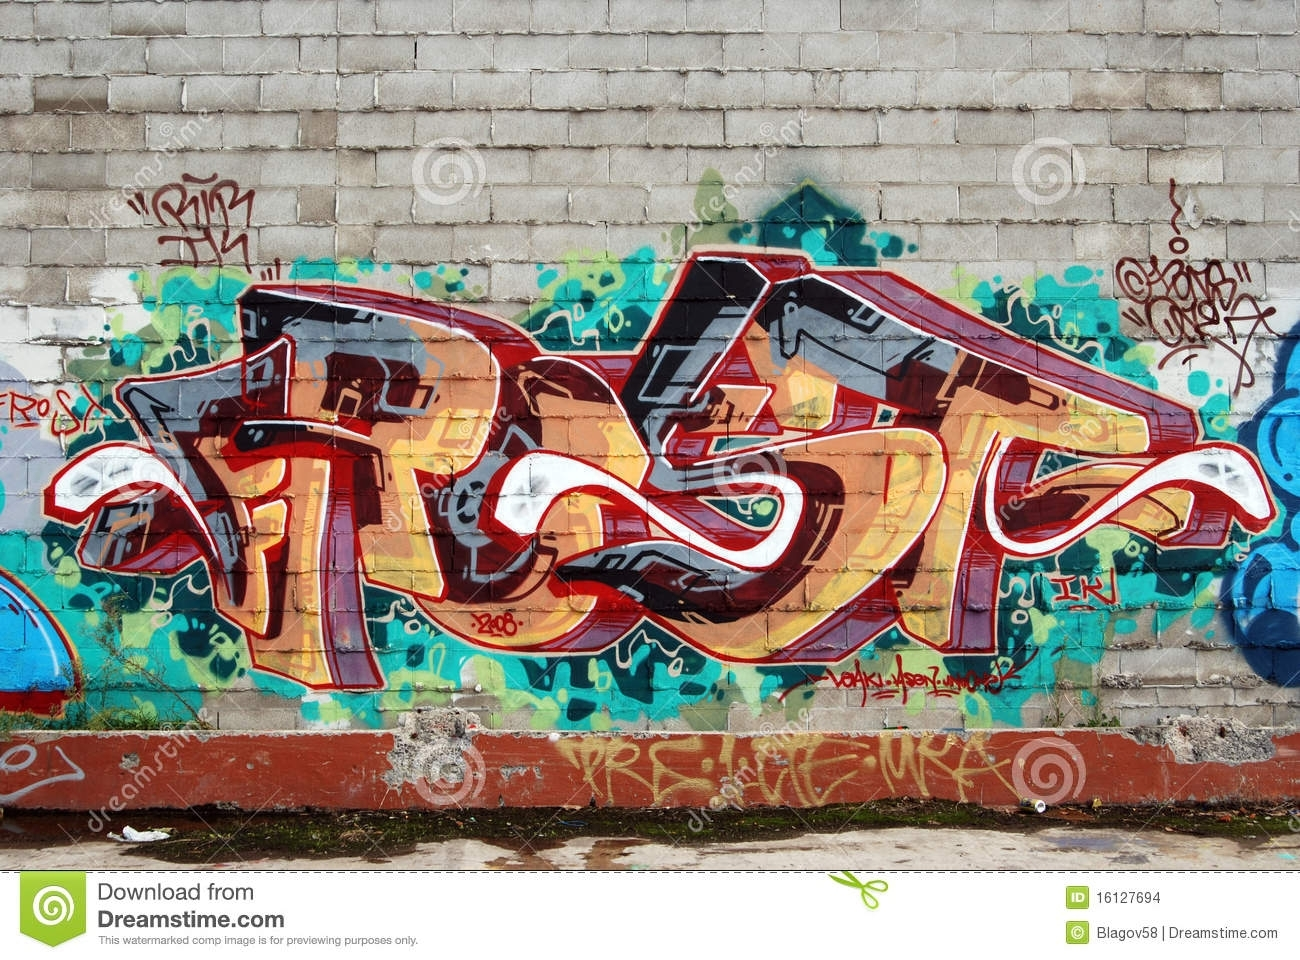 A Wall Vandalized With Street Graffiti Art Stock Photo – Image Of Pertaining To Most Current Graffiti Wall Art (View 6 of 20)